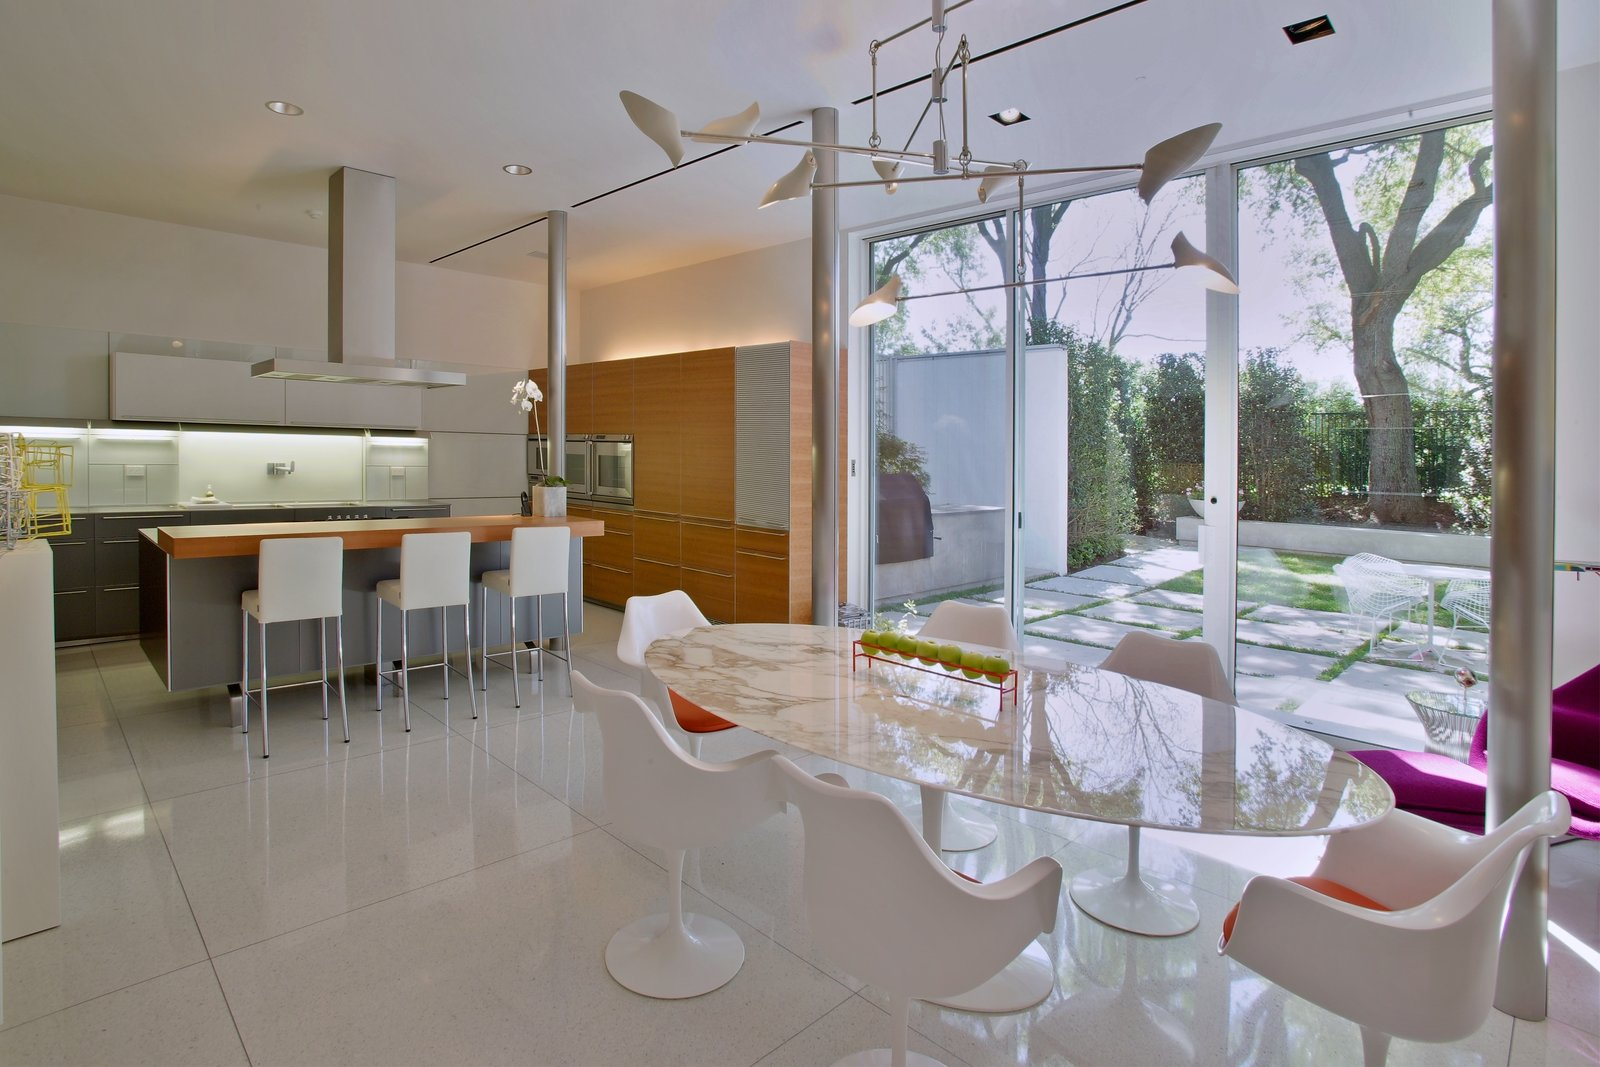 Kitchen, Refrigerator, Wall Oven, Cooktops, Range Hood, Microwave, Dishwasher, Laminate Cabinet, Ceiling Lighting, and Recessed Lighting  Oak Court by buchanan architecture